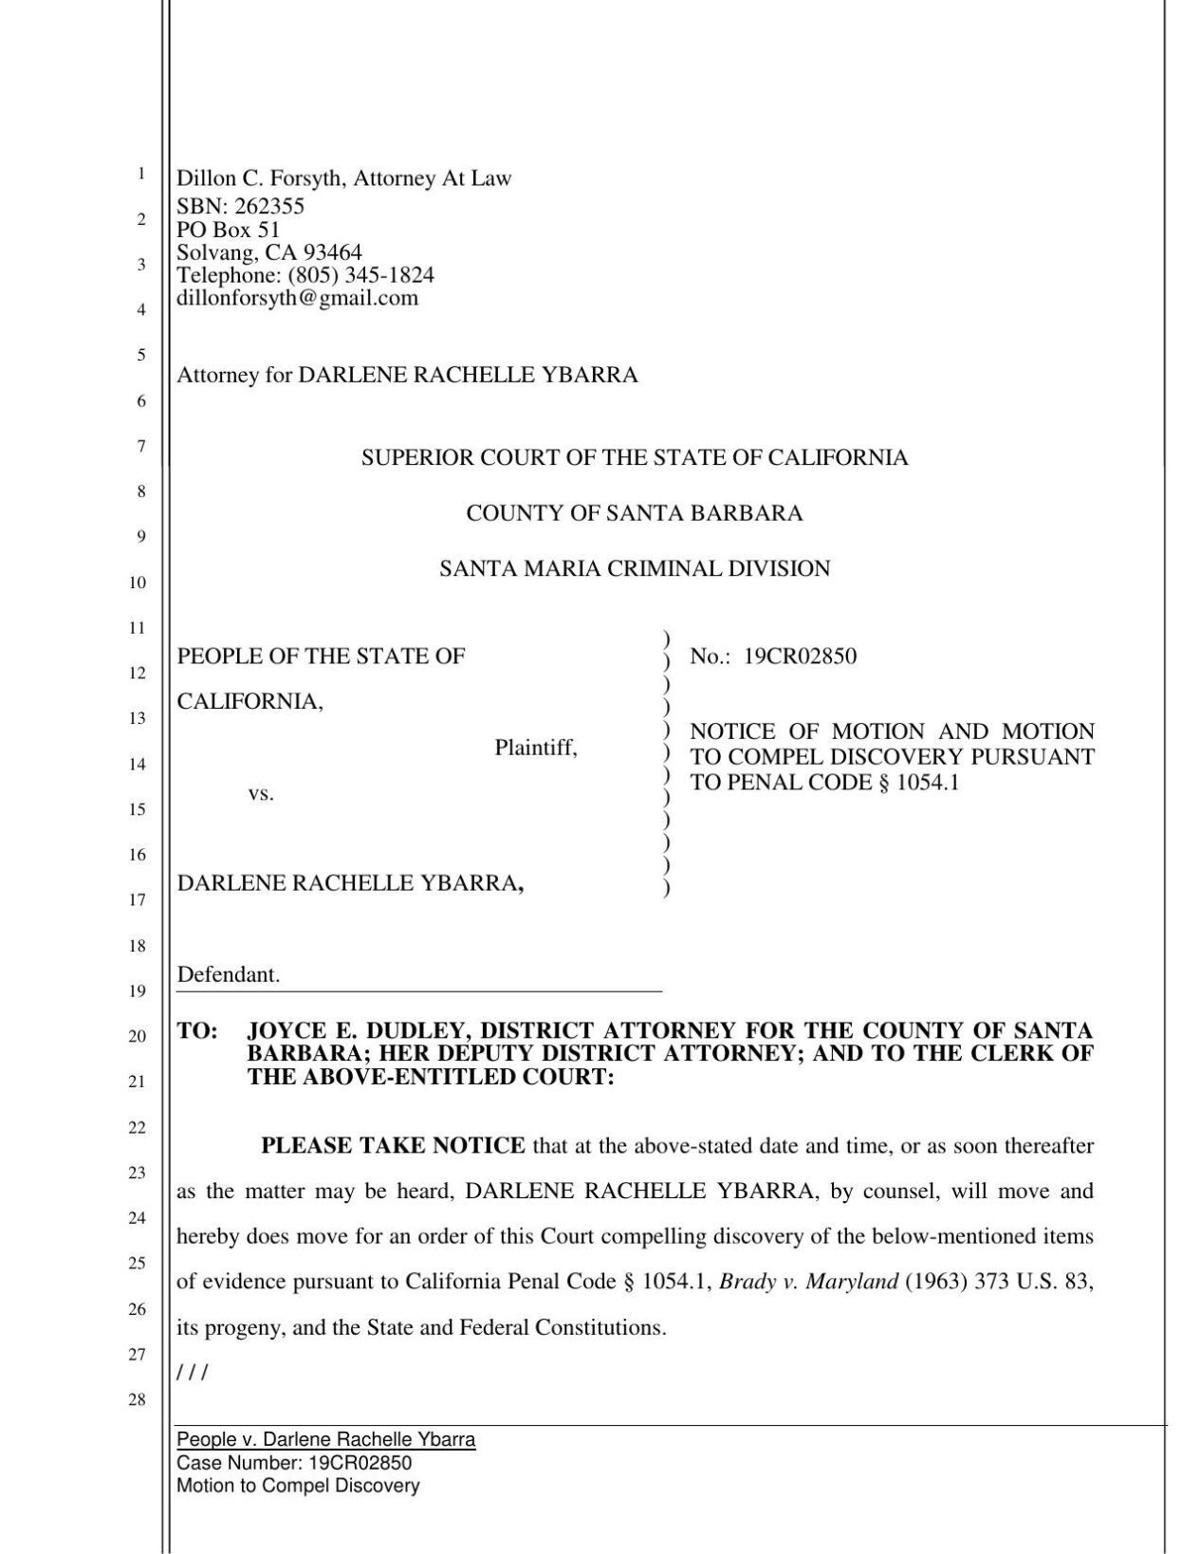 Ybarra motion to compel discovery